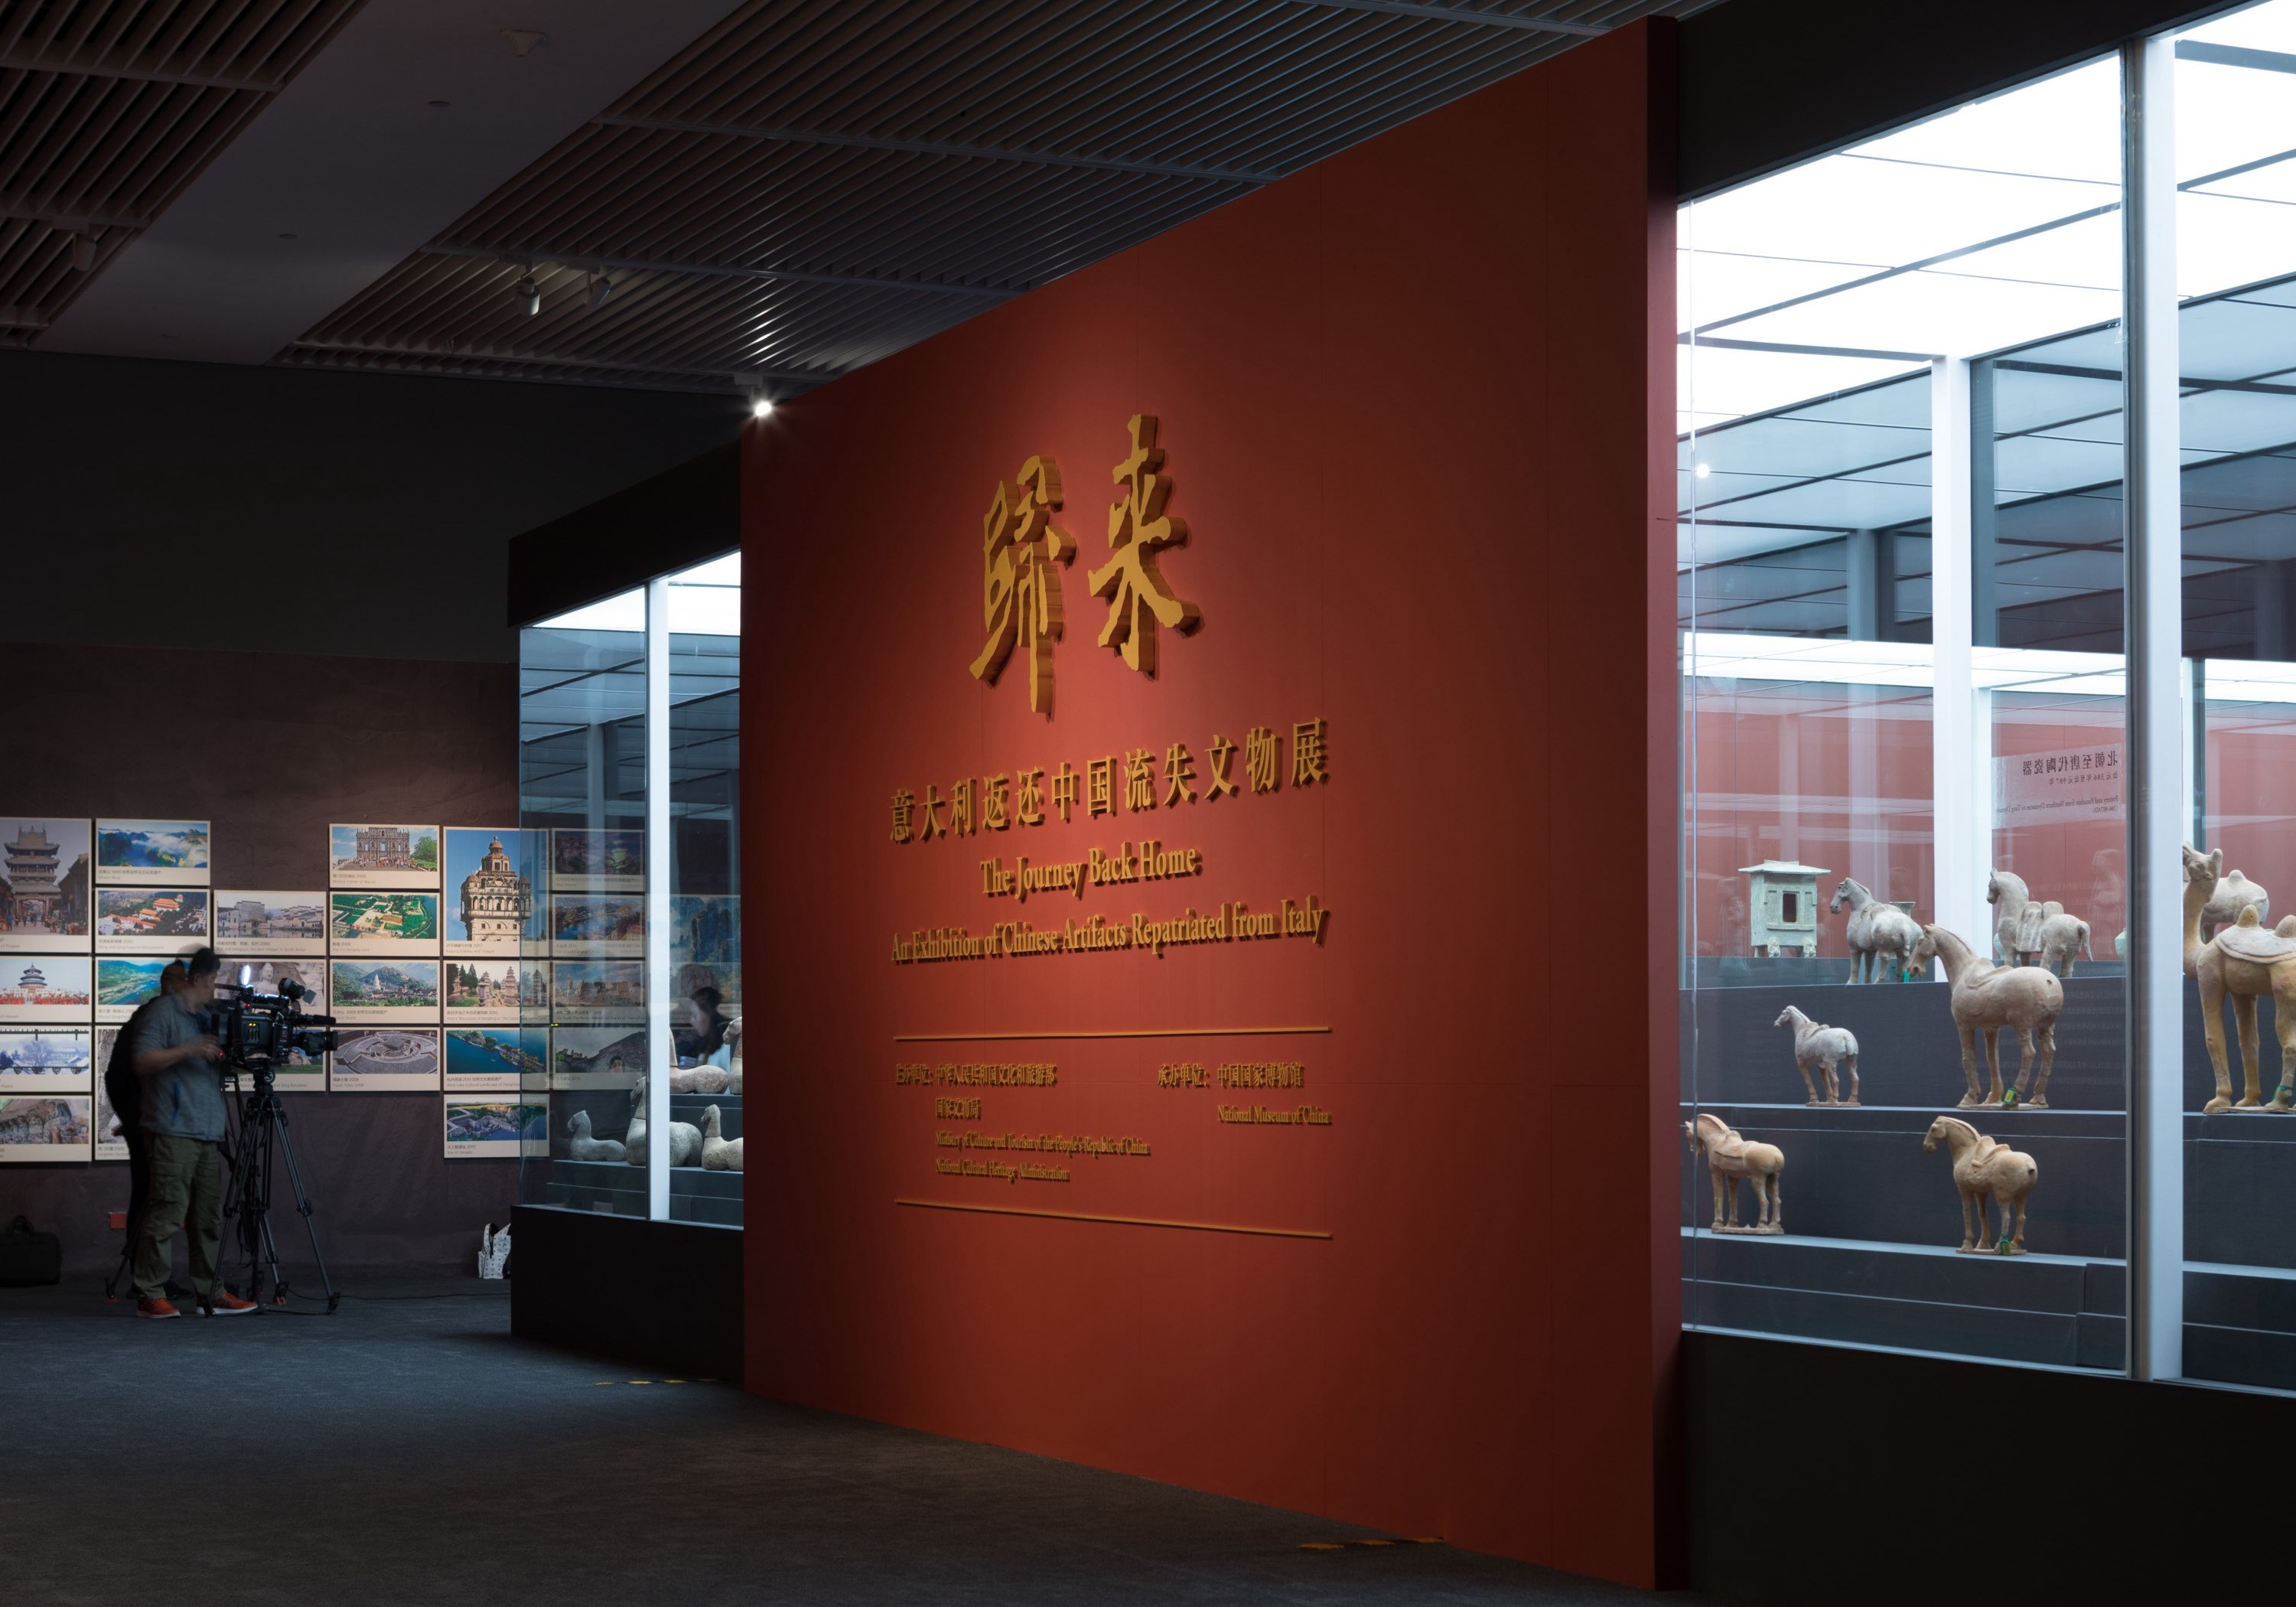 An exhibit of Chinese artifacts repatriated from Italy kicks off in Beijing